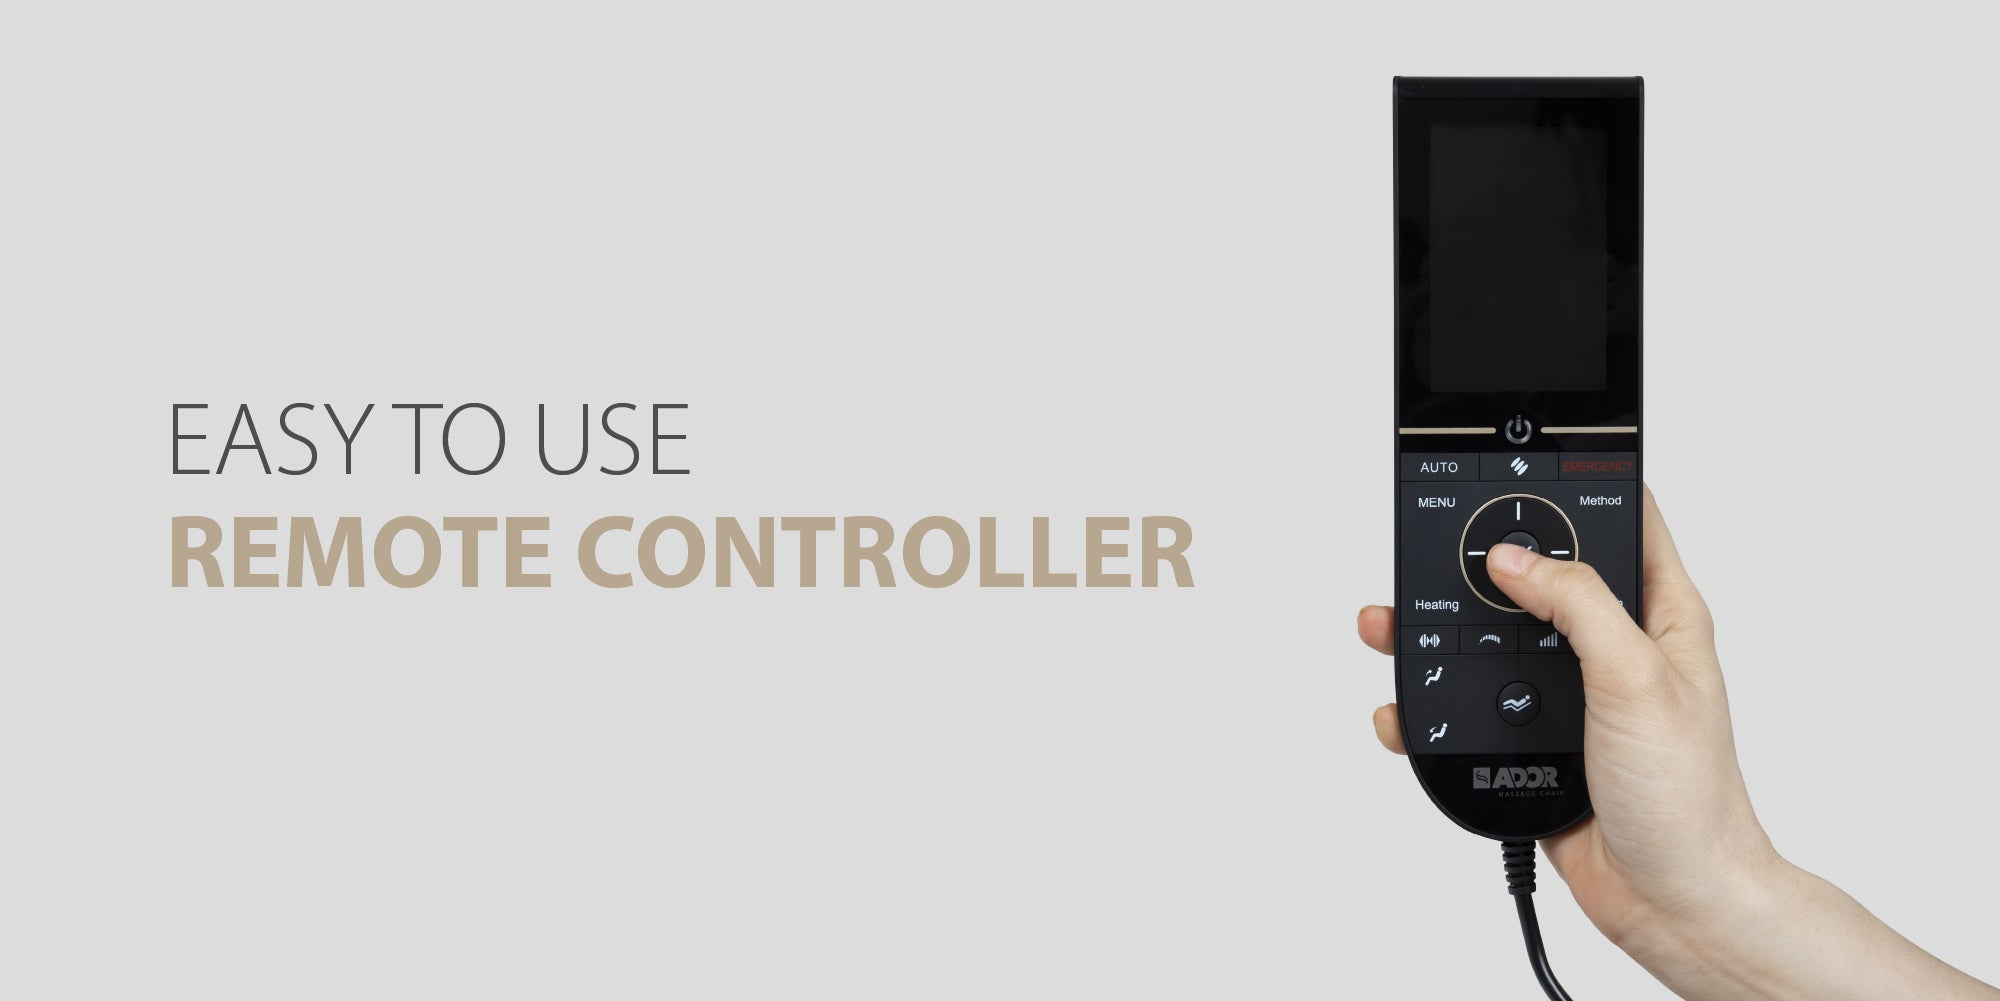 Easy to use Remote controller